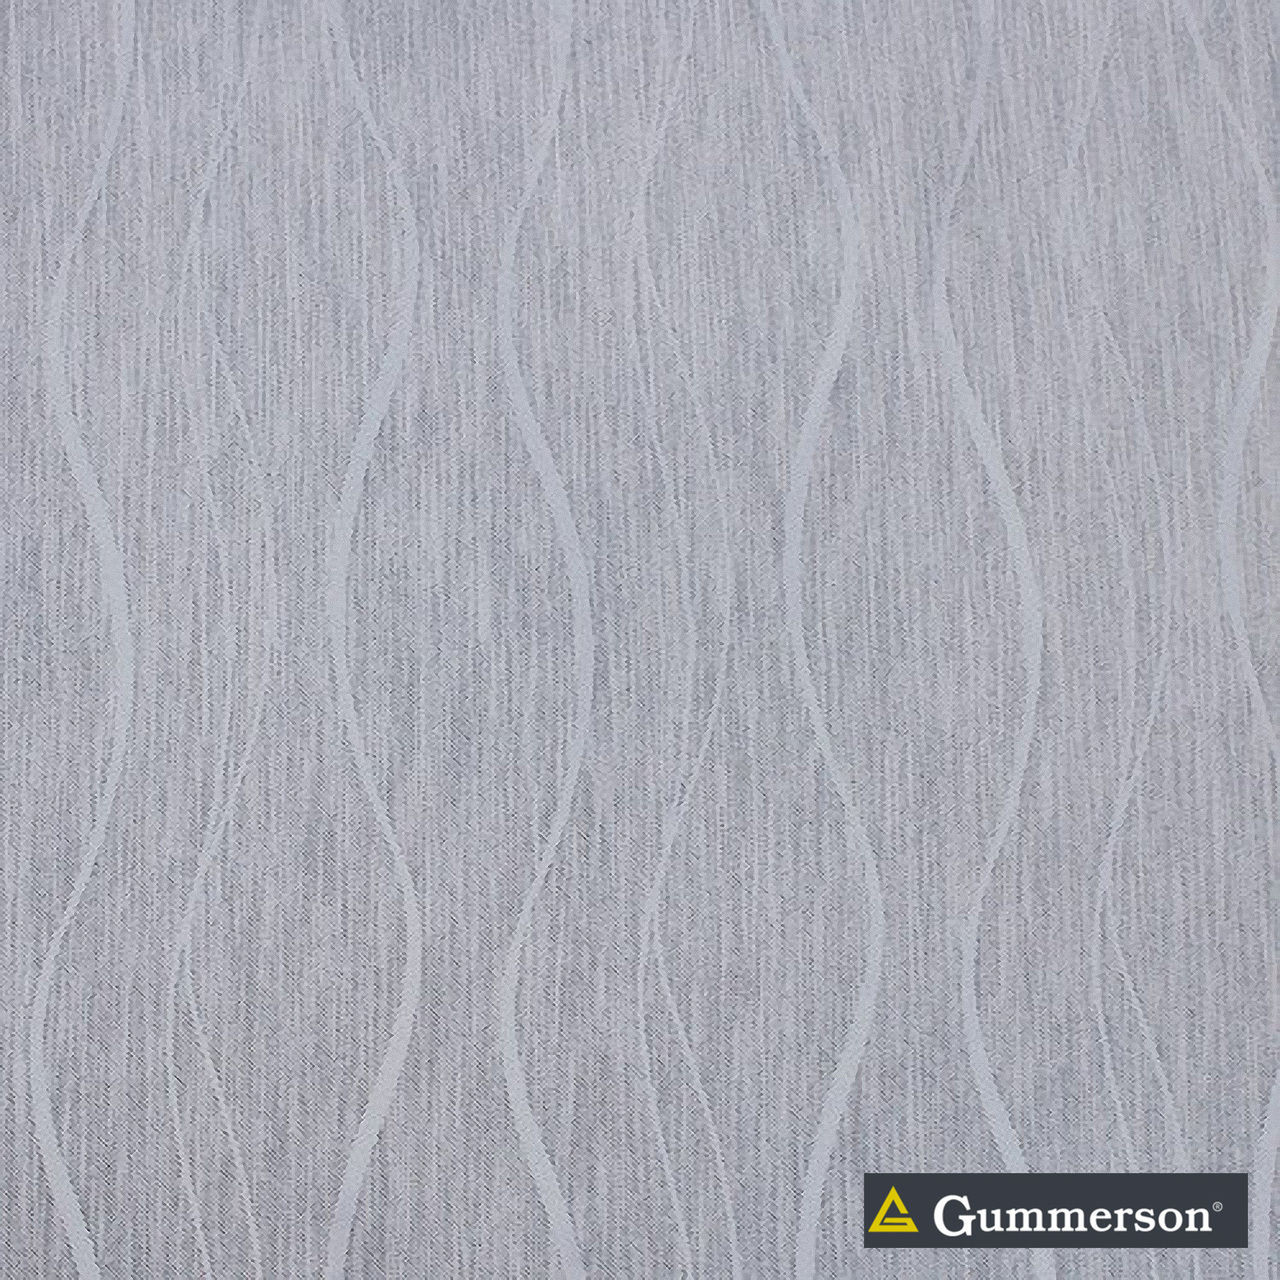 Gummerson - Freshwater-Softweave Mist Room Darkening 280cm  | Curtain Lining Fabric - Fire Retardant, Grey, Contemporary, Pattern, Stripe, Synthetic, Transitional, Washable